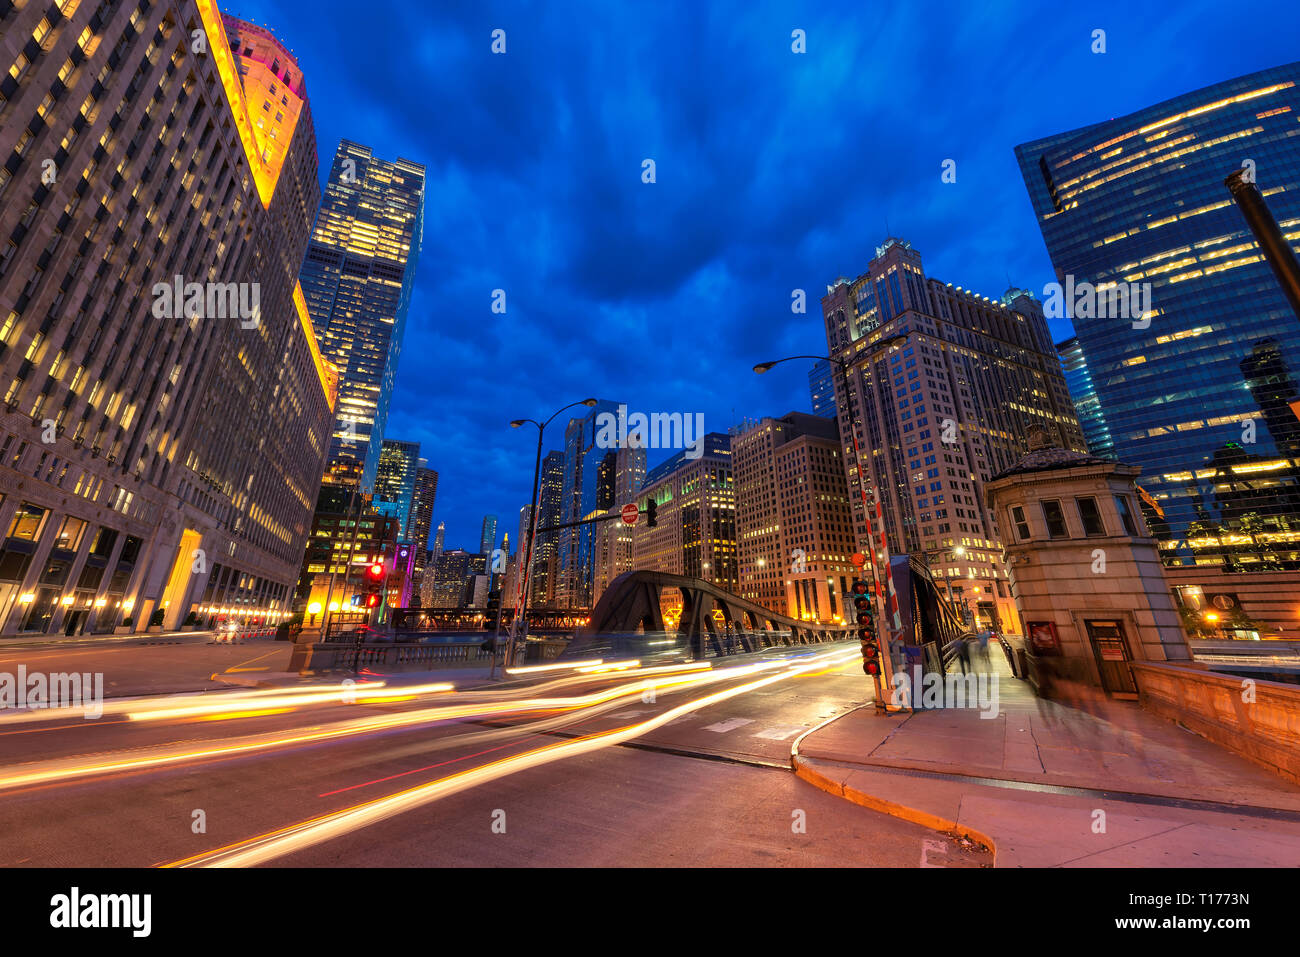 Night view of Chicago downtown in Chicago, Illinois - Stock Image